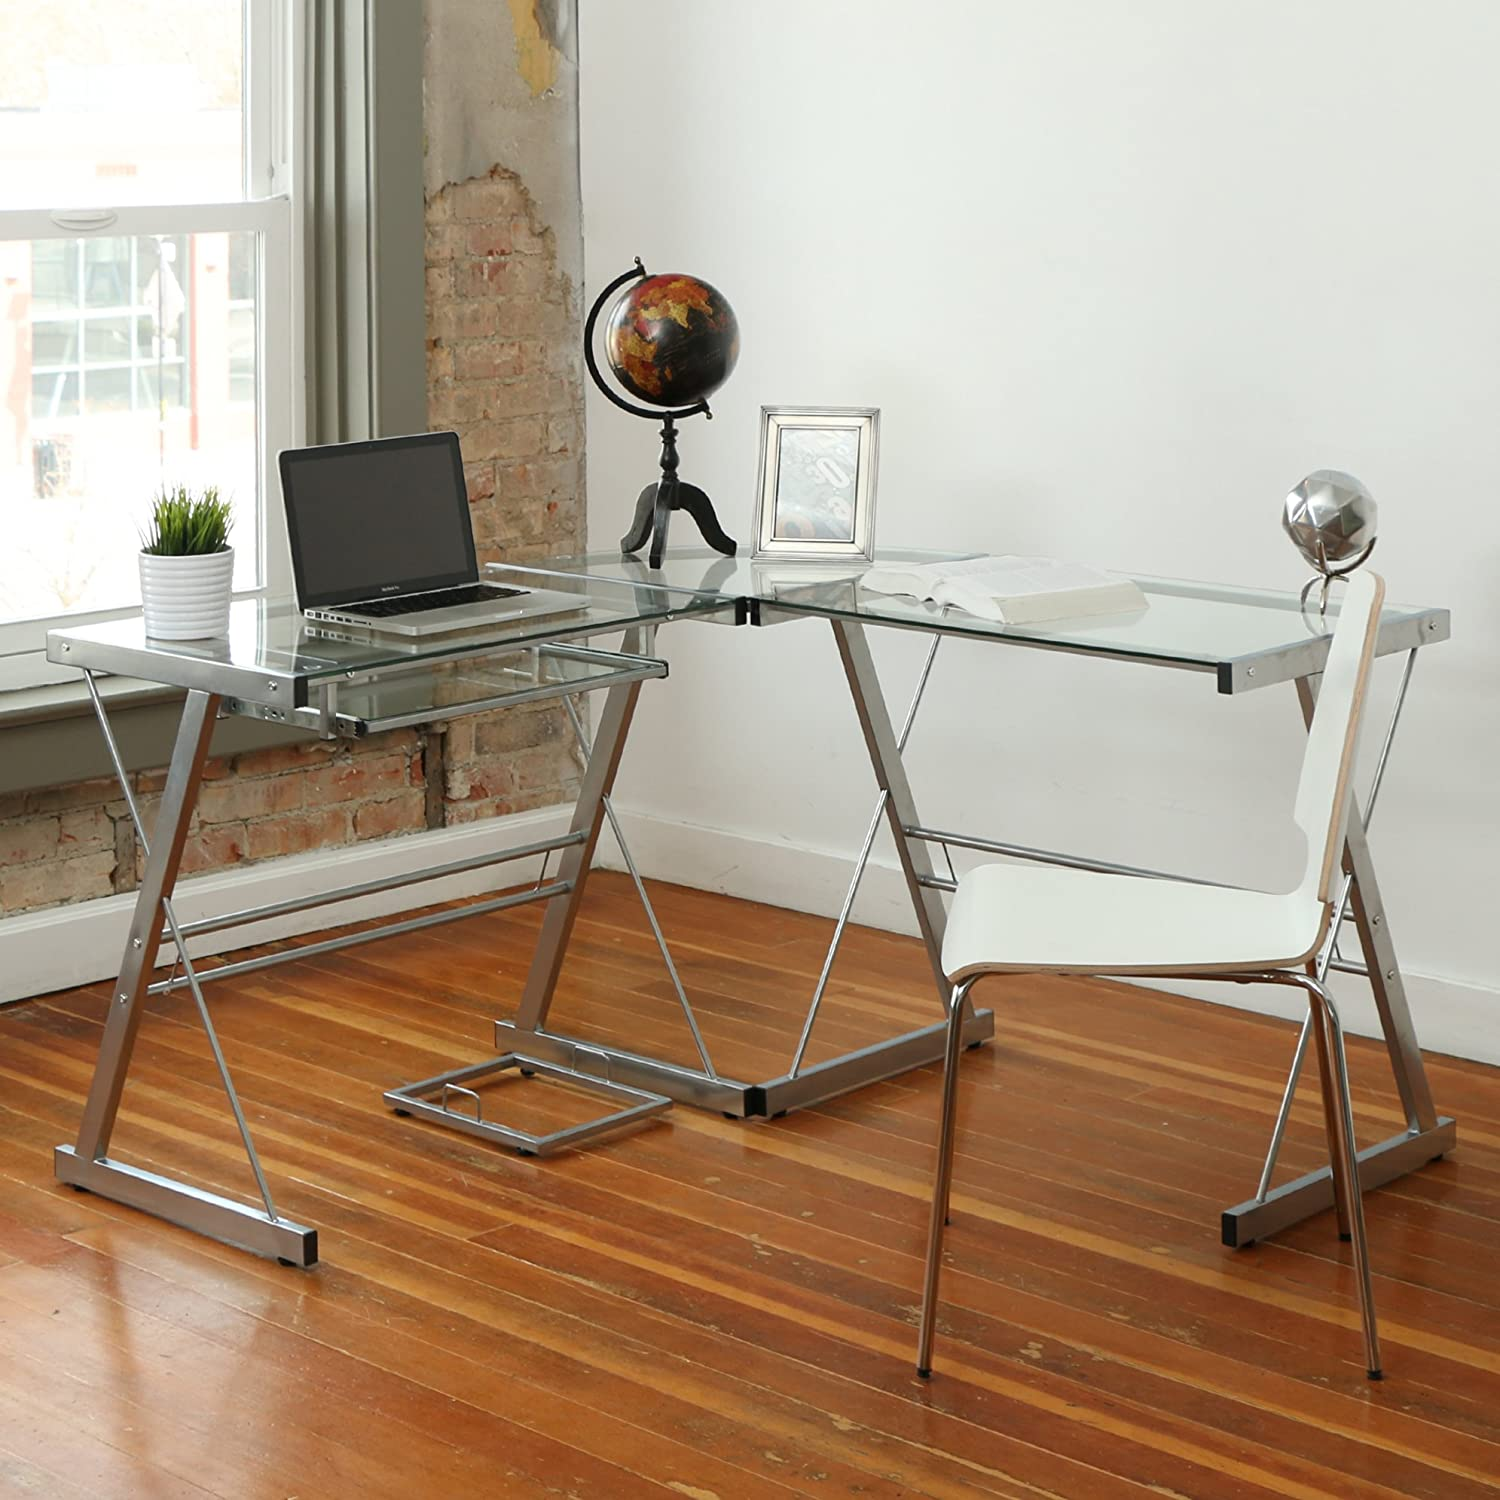 Amazon.com: Walker Edison 3-Piece Contemporary Glass and Steel Desk,  Silver: Kitchen & Dining